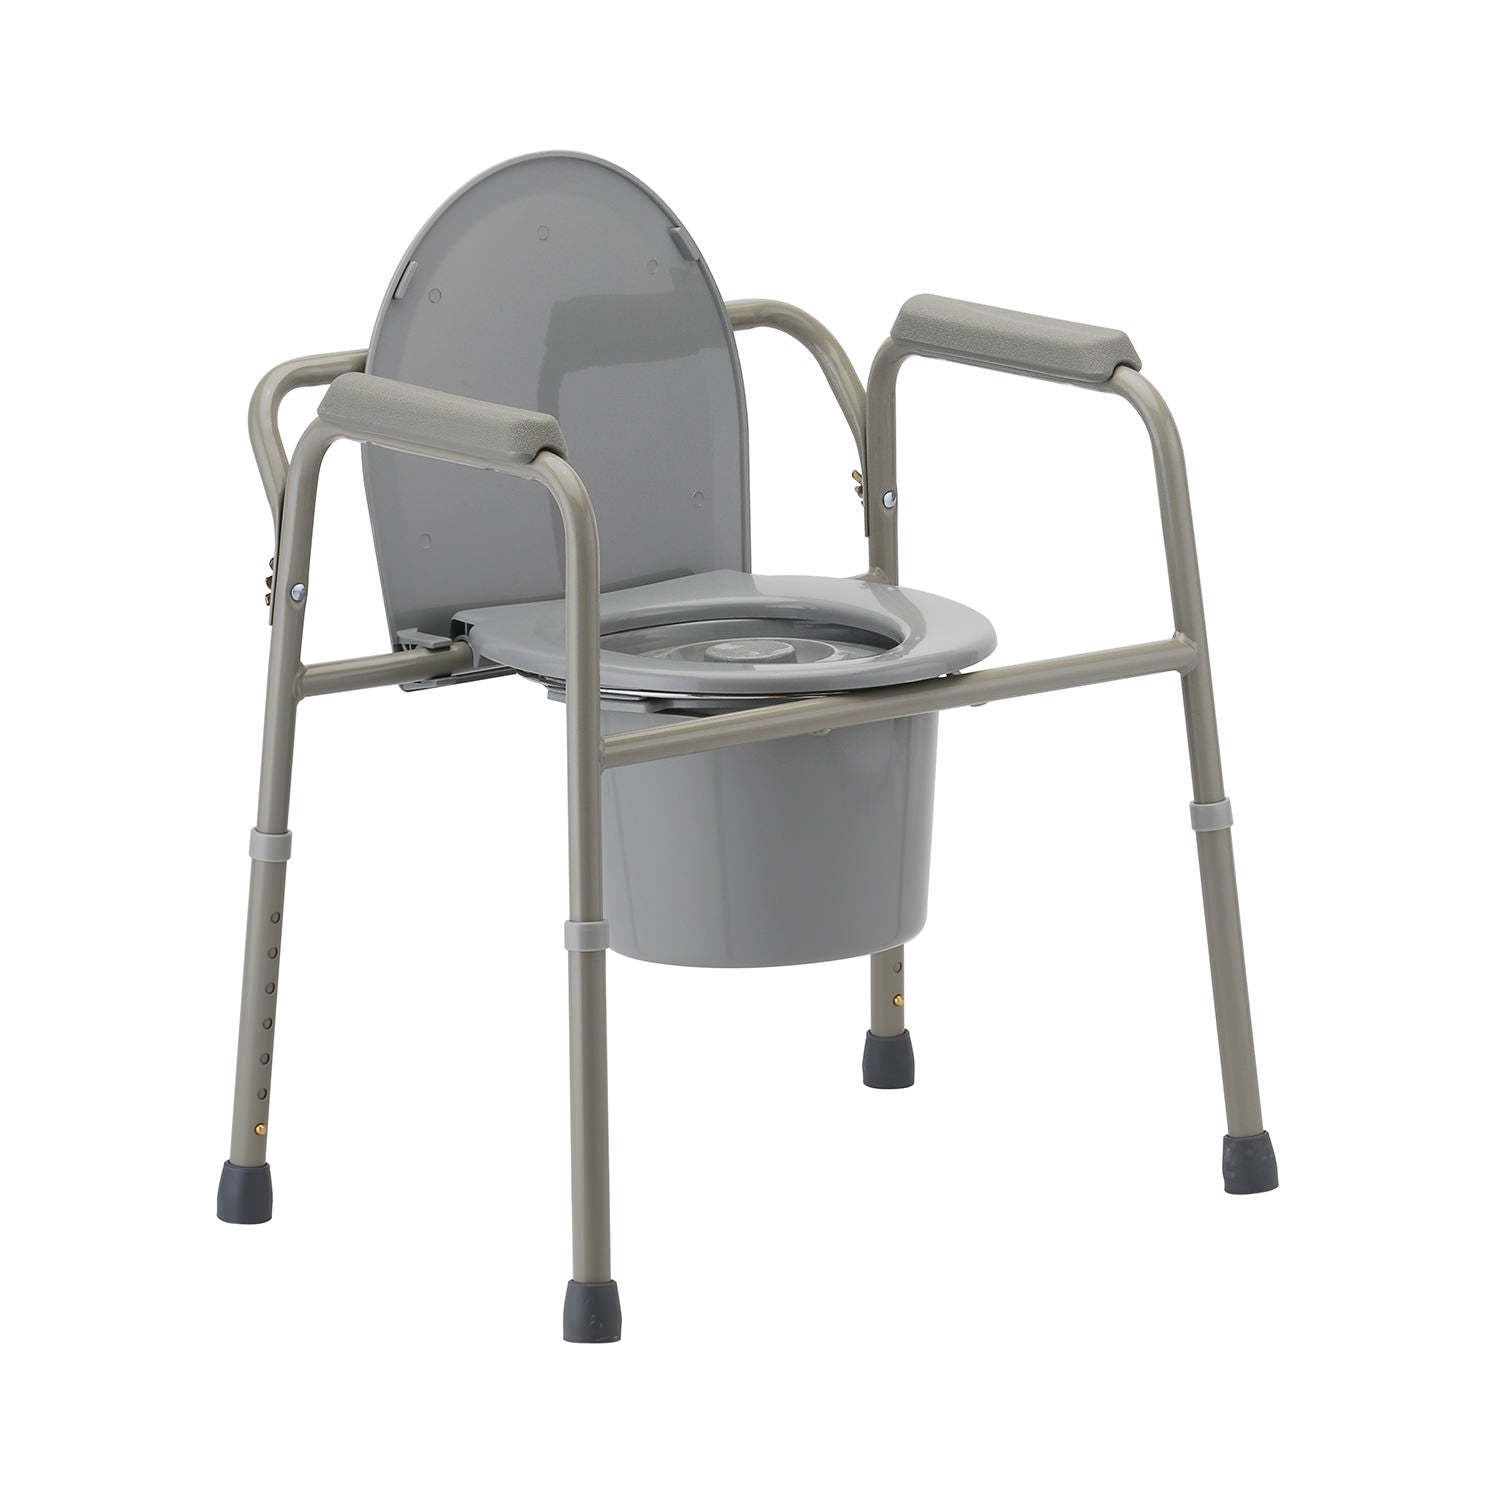 Nova 3-in-1 Commode with Back